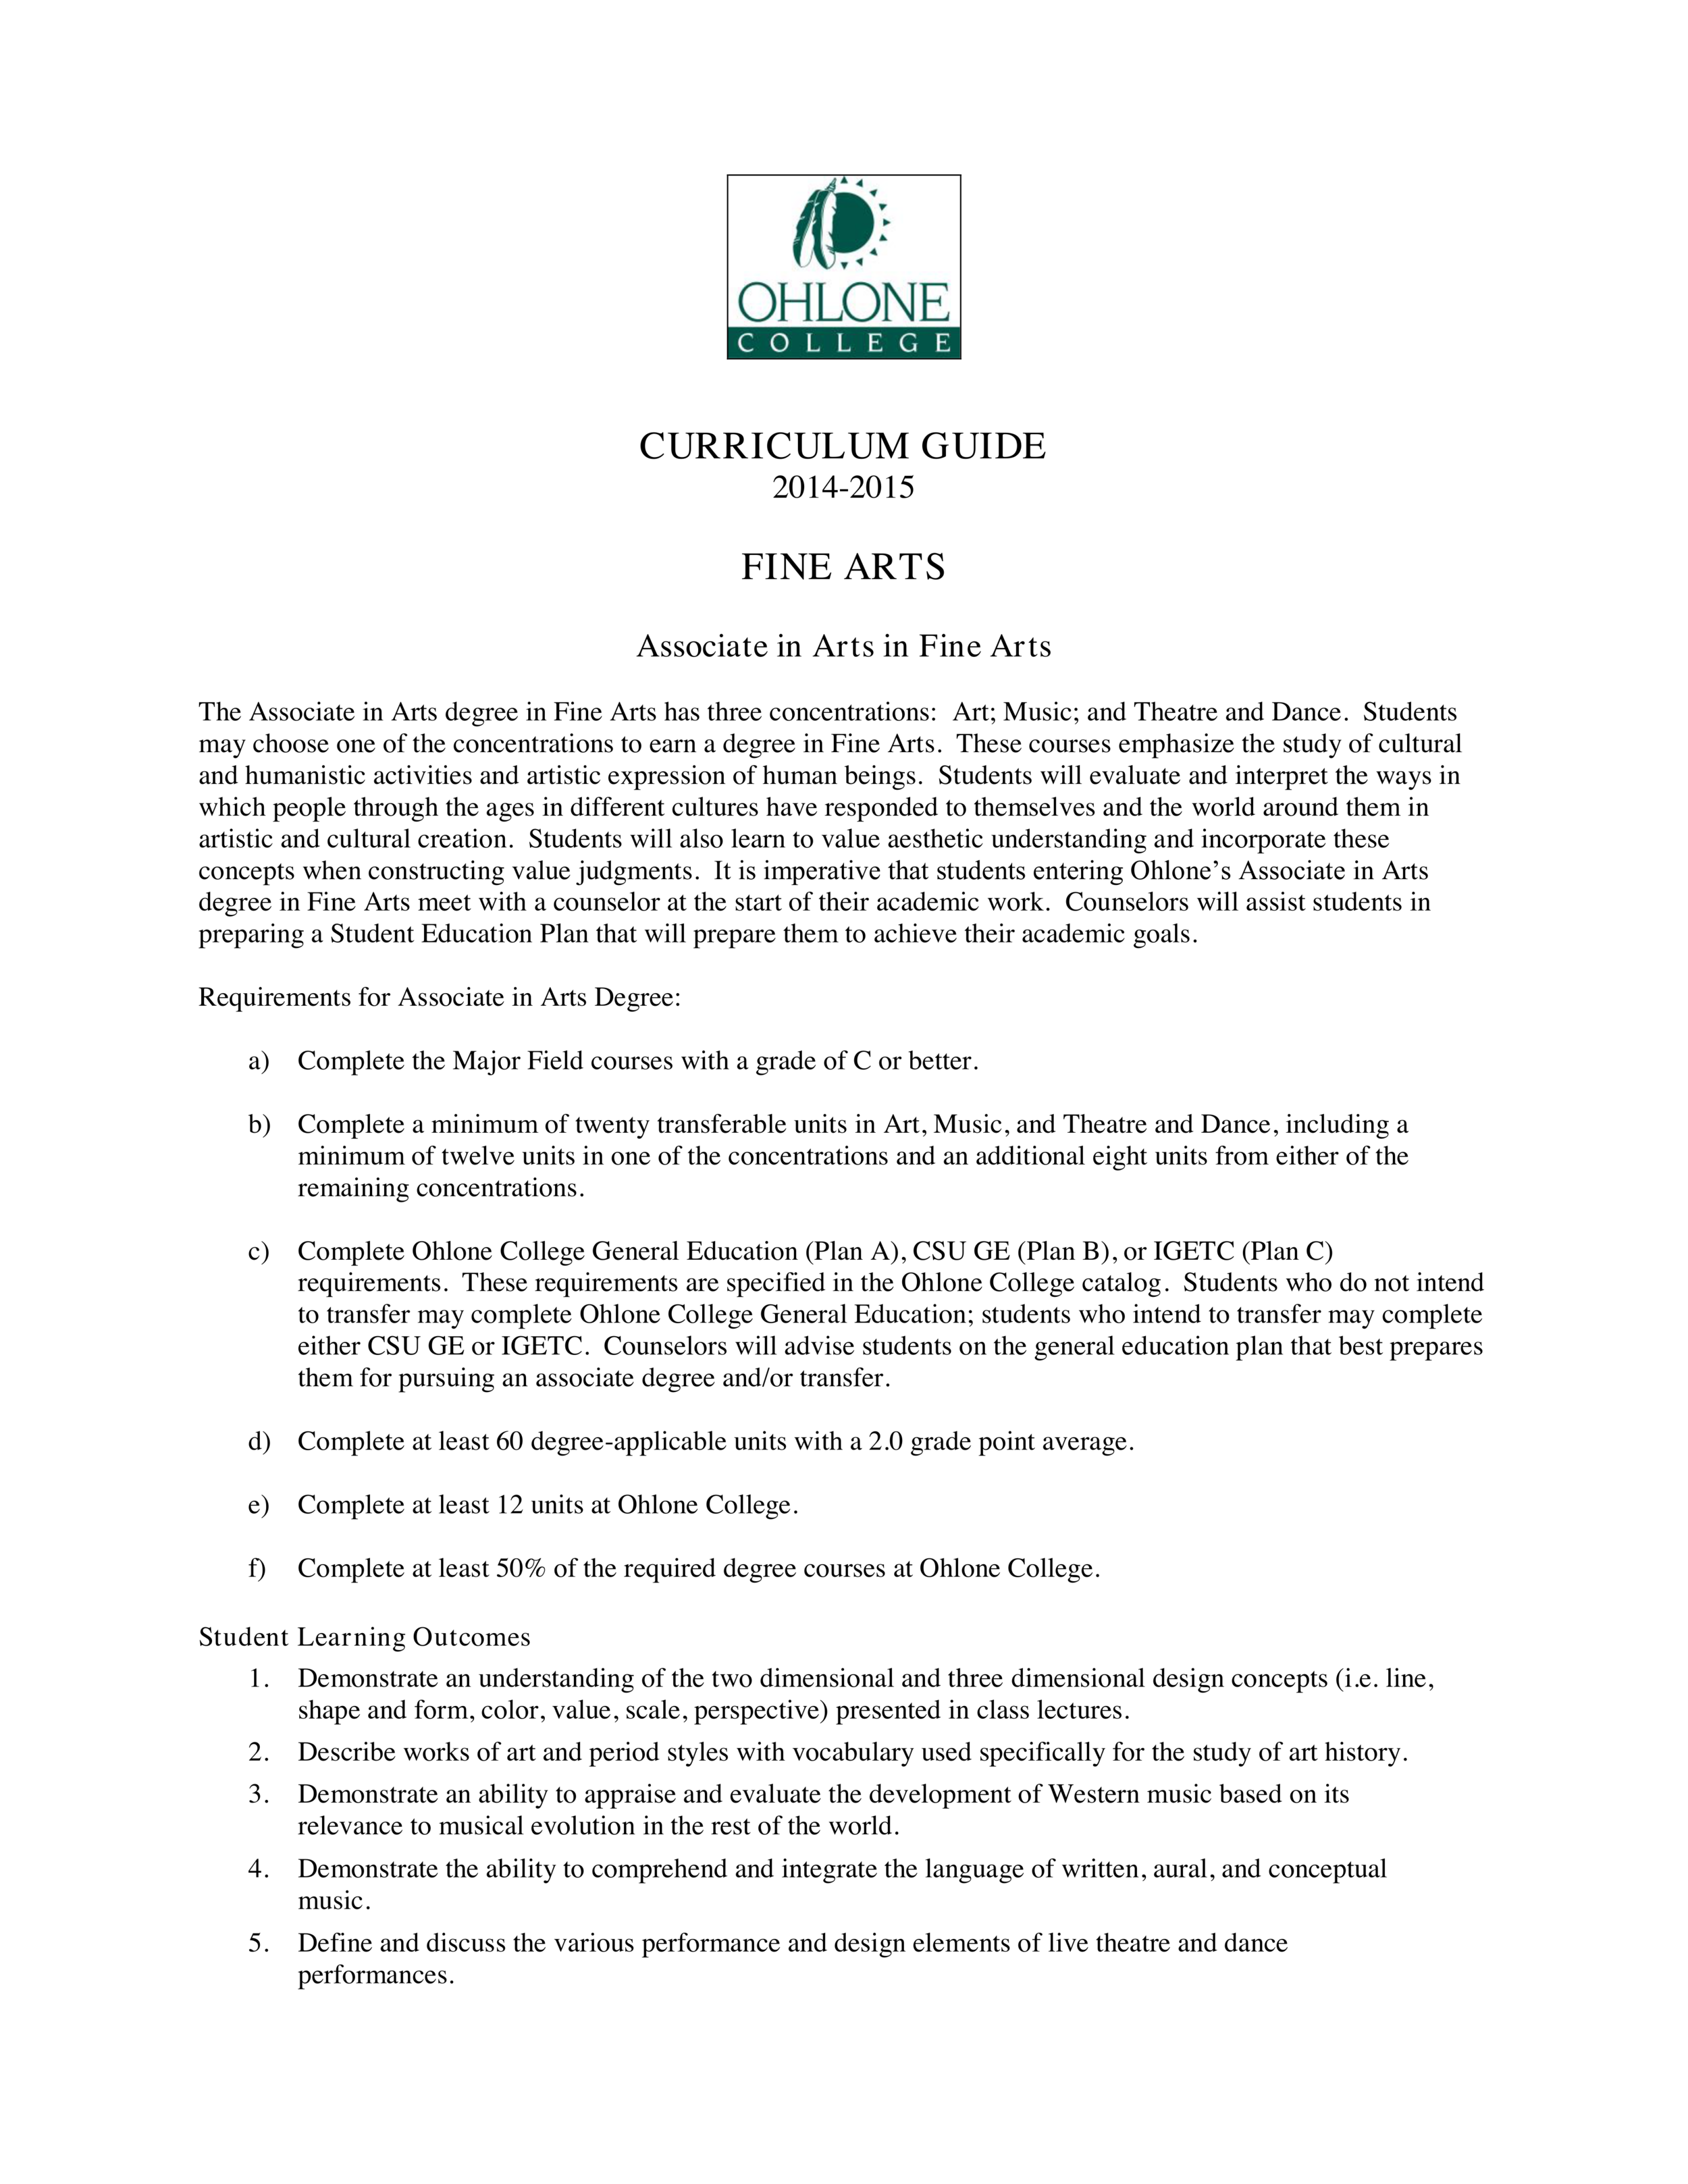 Curriculum Guide: Associate of Arts in Fine Arts: Art Concentration, Ohlone College, Fremont, CA, 2015 (1/3),  https://www.ohlone.edu/sites/default/files/1415-finearts.pdf,  Accessed 05 May 2019